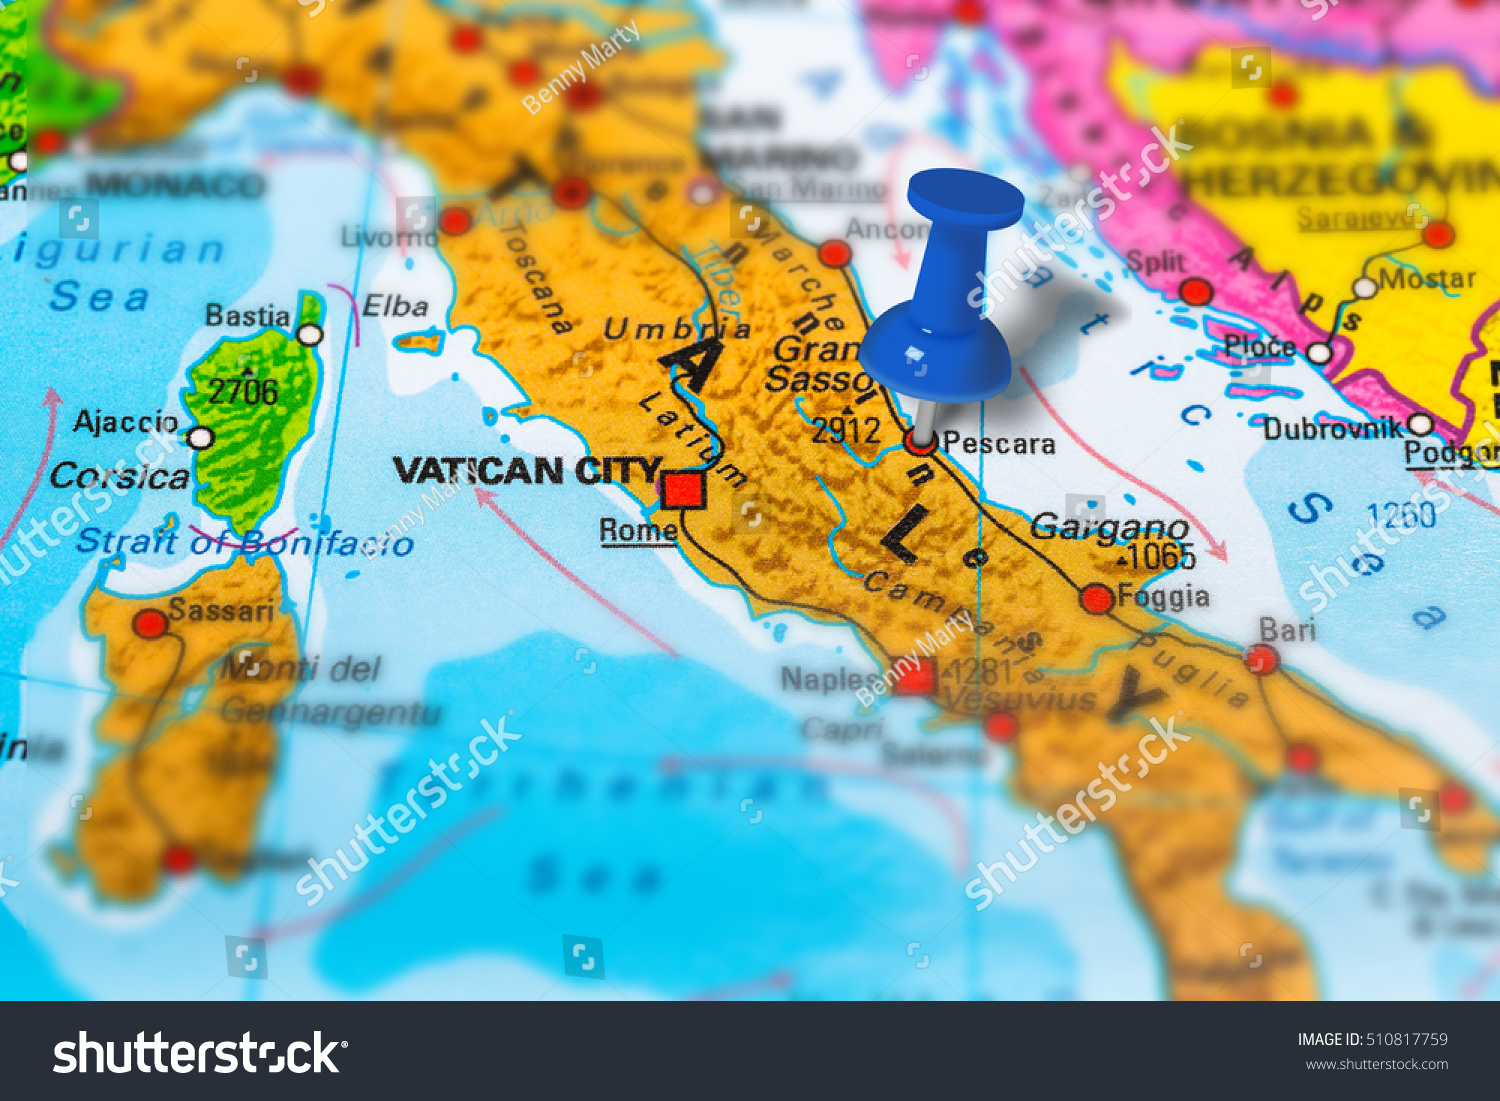 Pescara Italy Pinned On Colorful Political Stock Photo  Royalty Free     Pescara in Italy pinned on colorful political map of Europe  Geopolitical  school atlas  Tilt